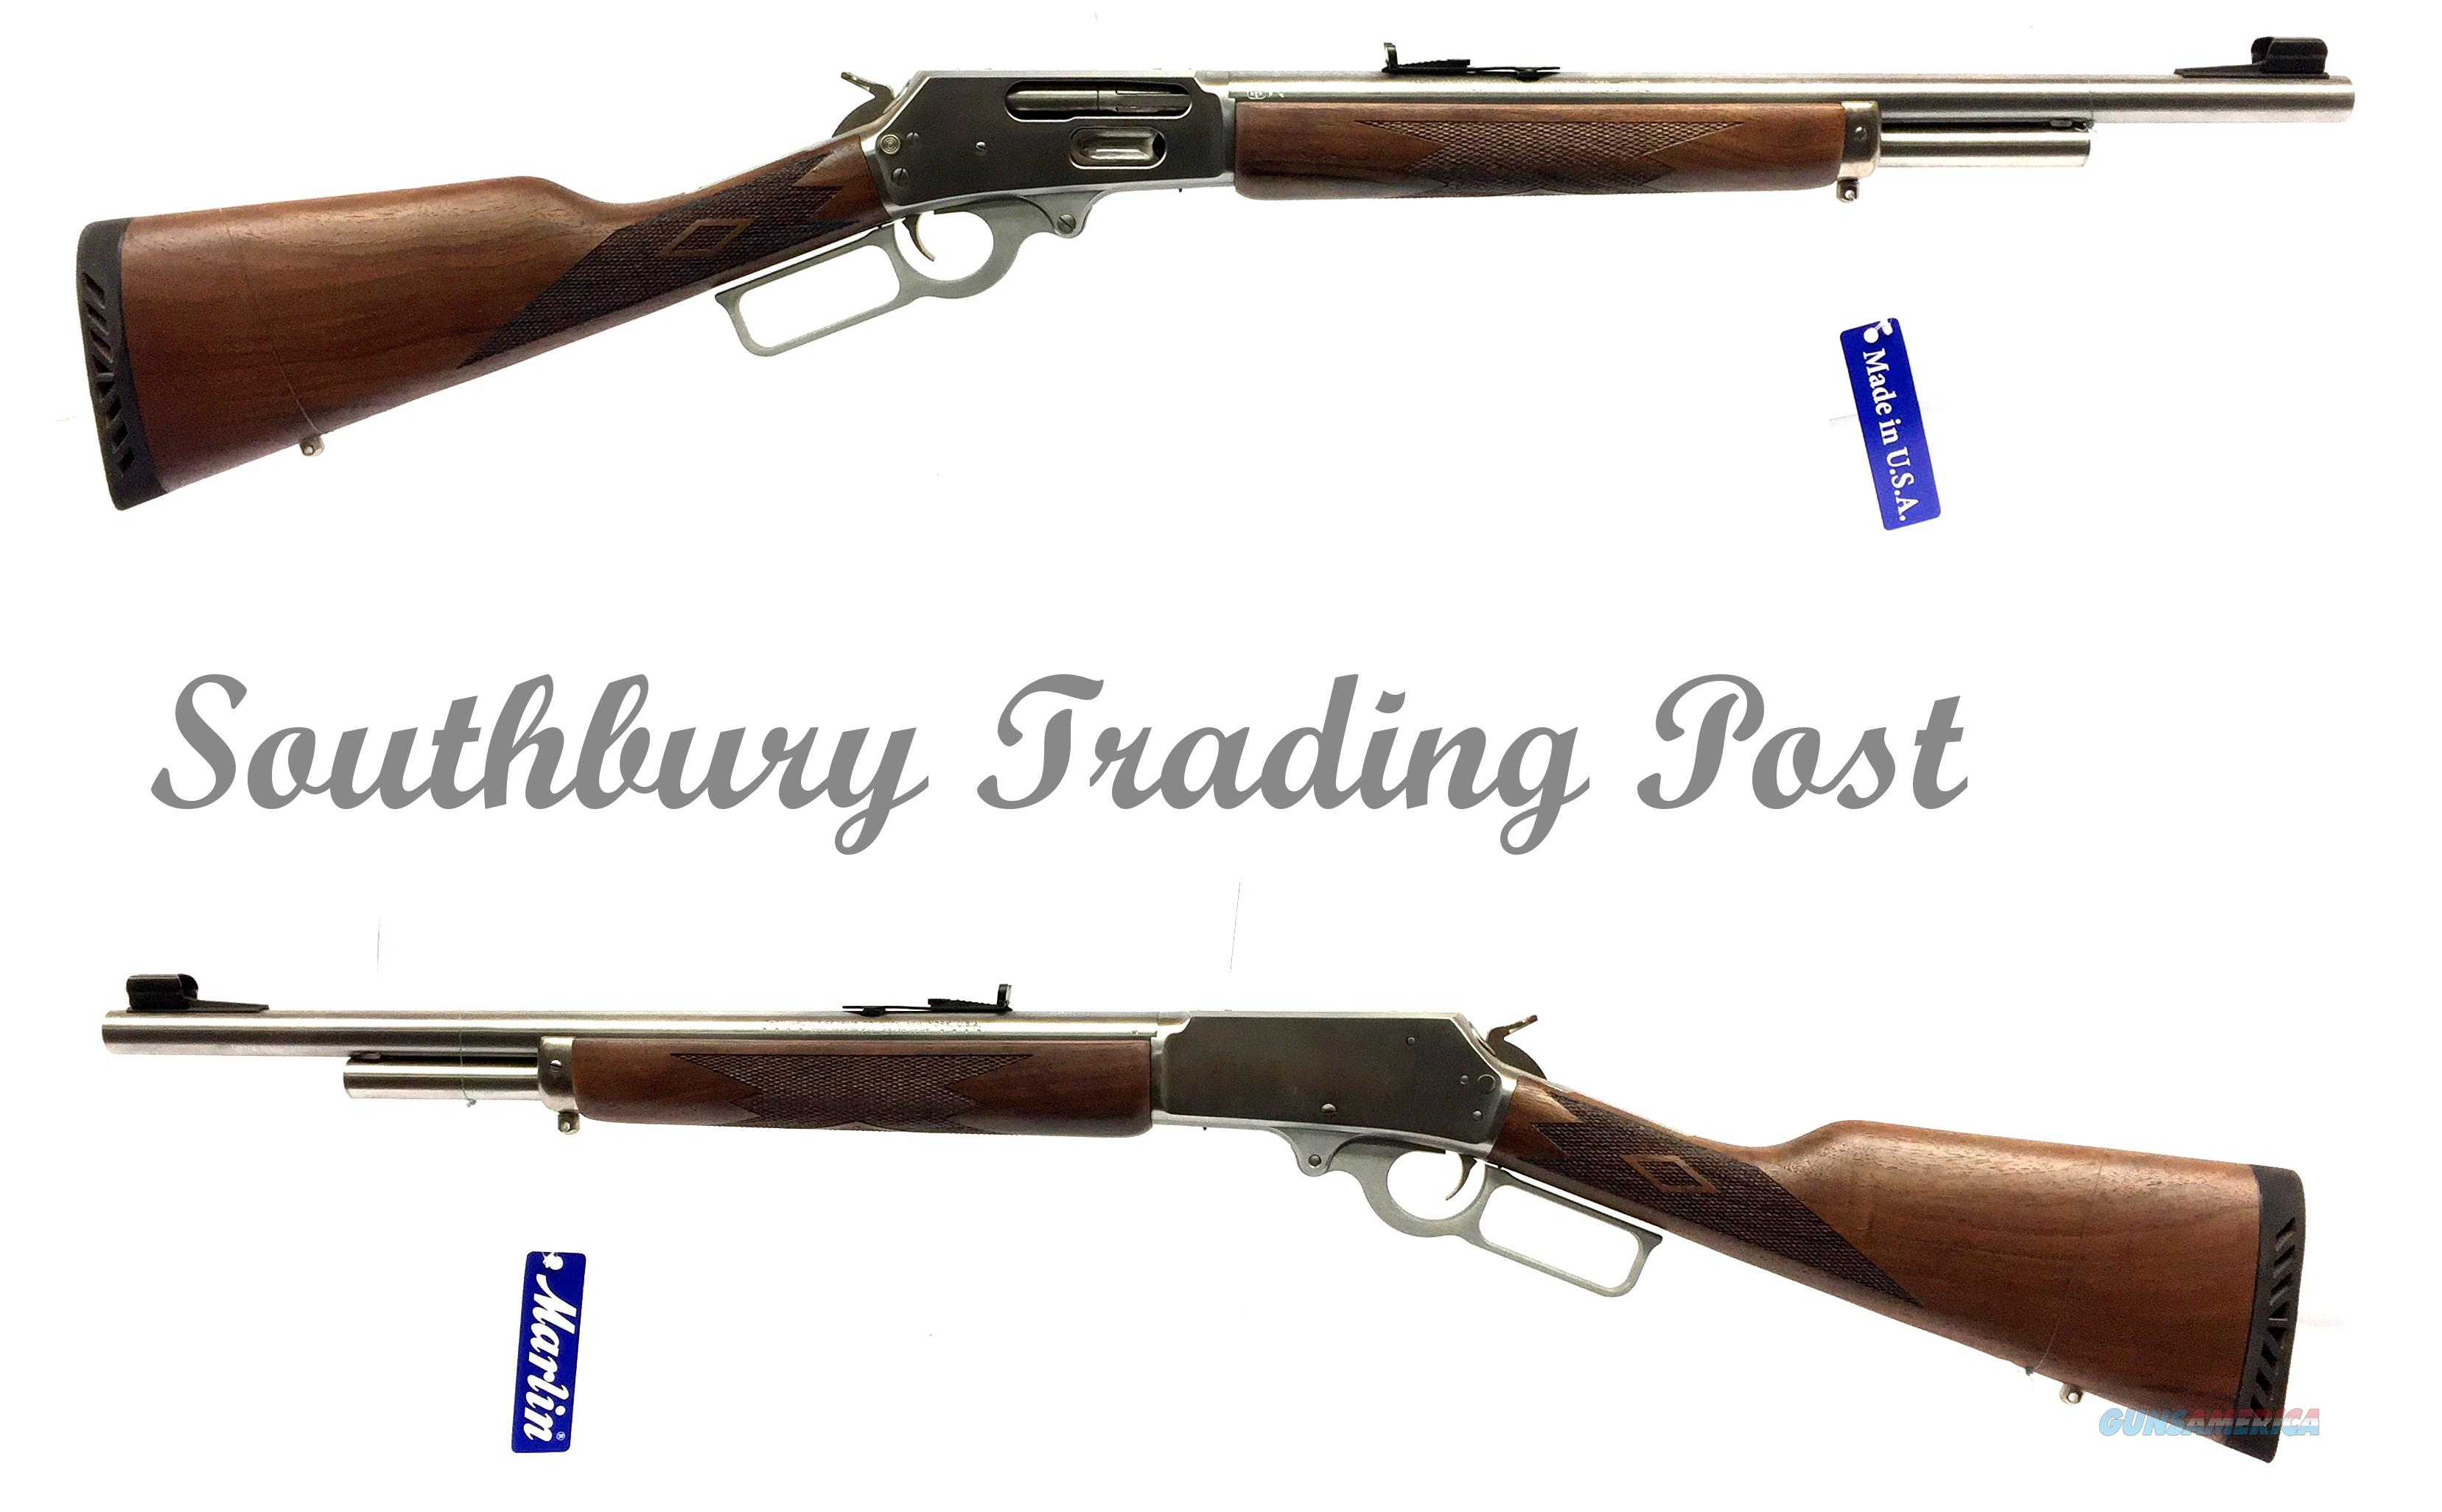 Marlin Rifle Backgrounds on Wallpapers Vista